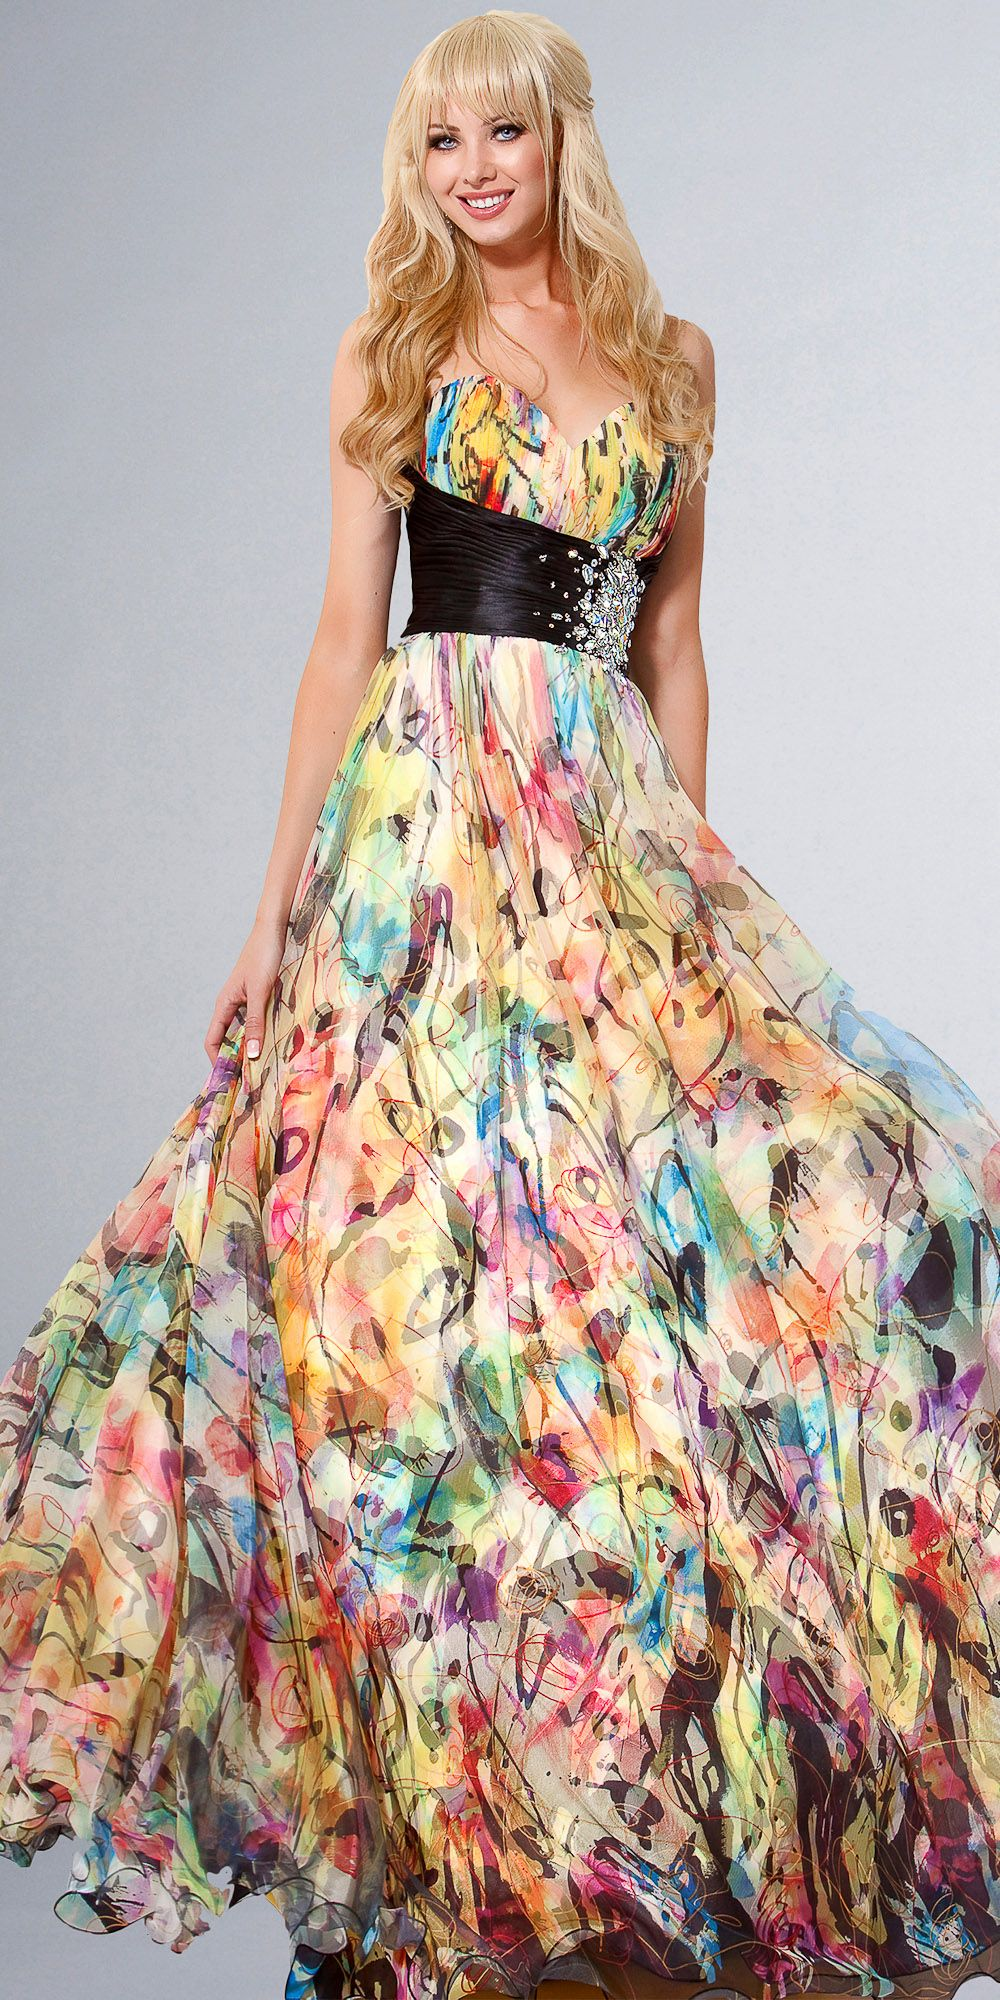 Floral Print Ball Gowns by Jovani $500.00 | Ma Lov Mode | Pinterest ...